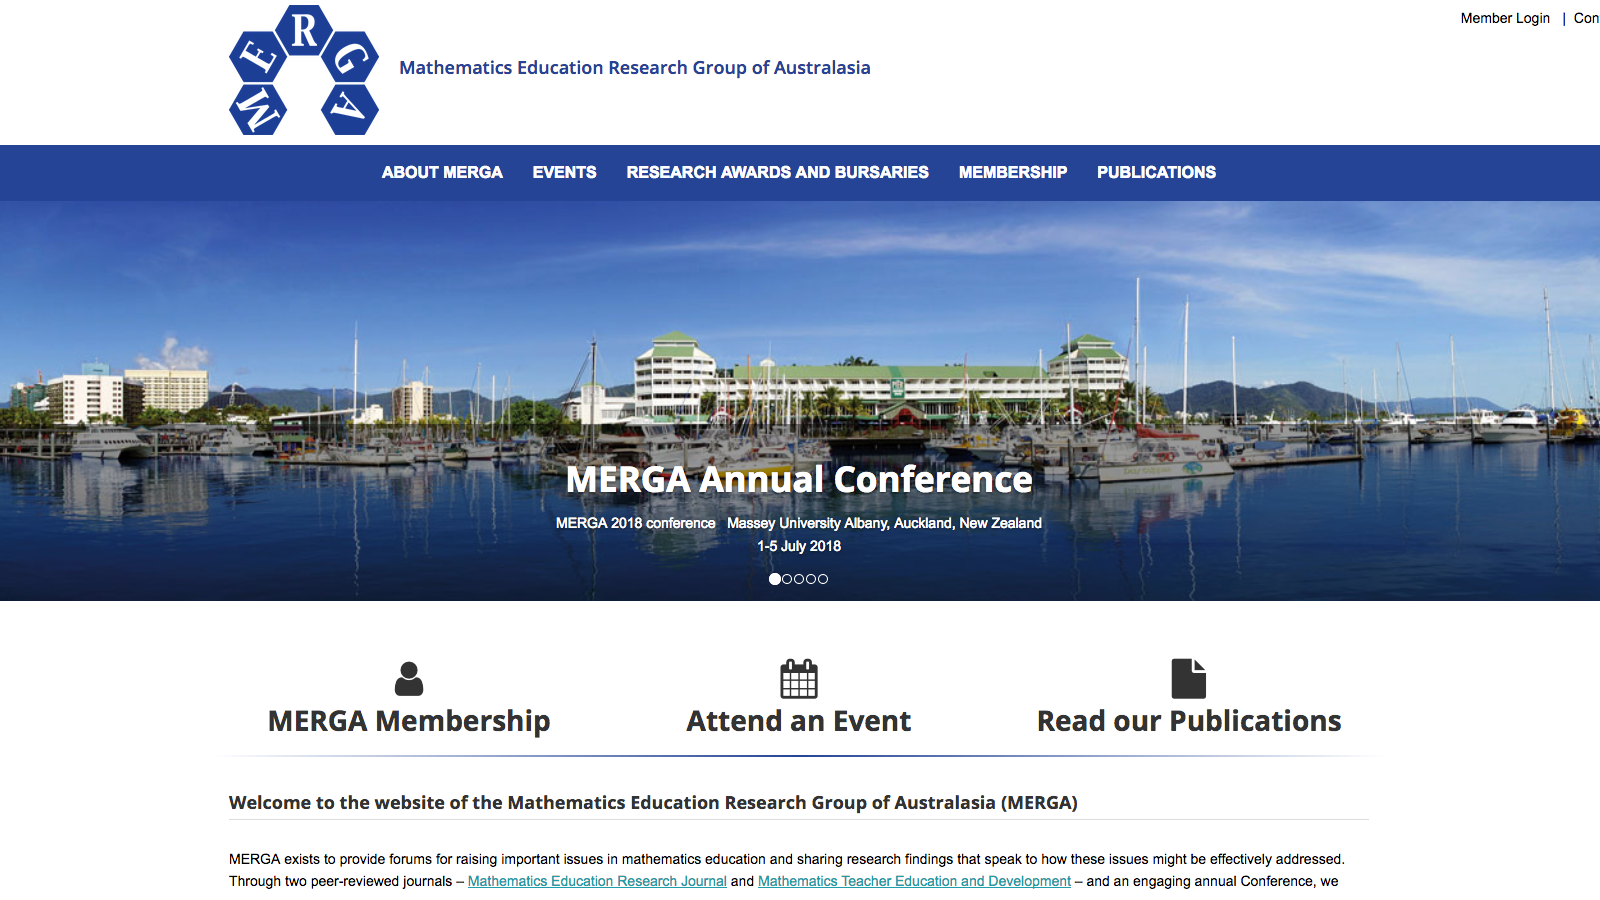 Screenshot of the new website by MERGA